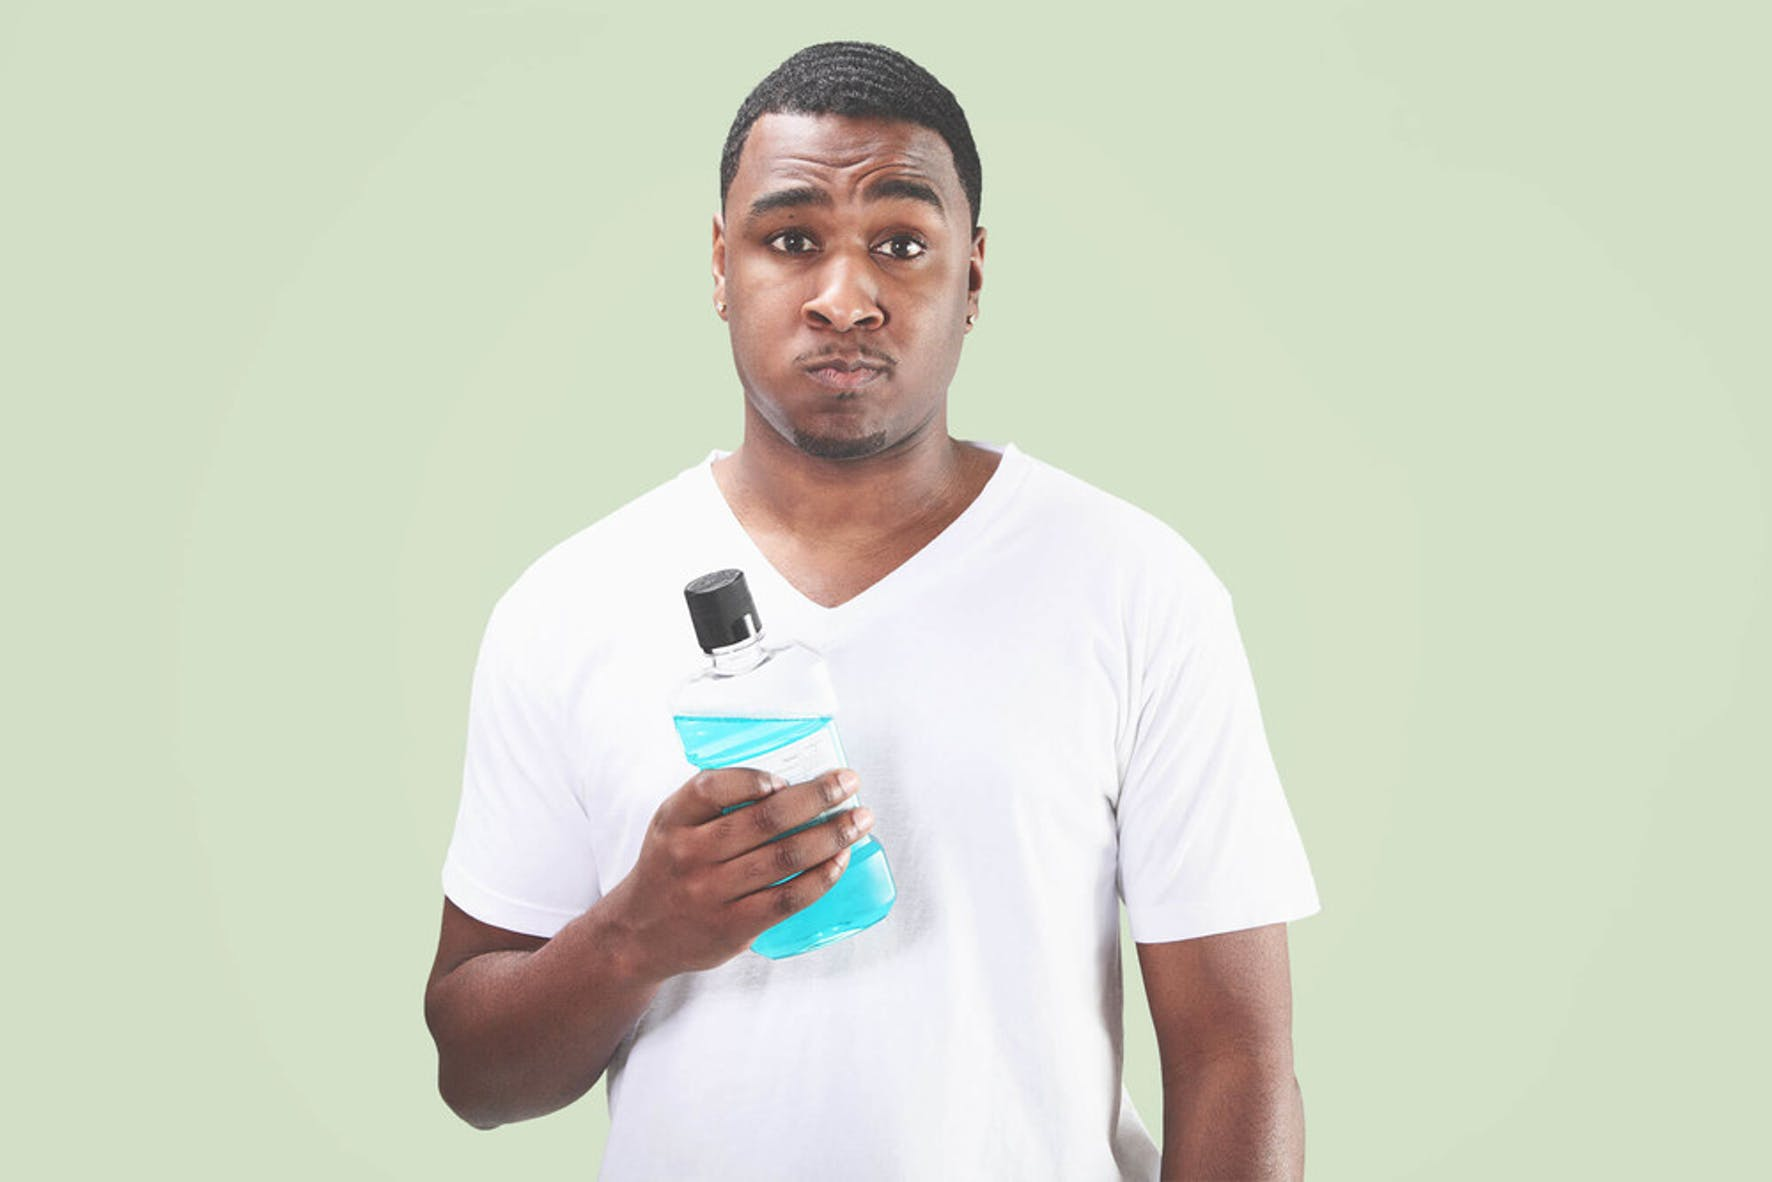 Guy shows mouthwash to maintain oral health